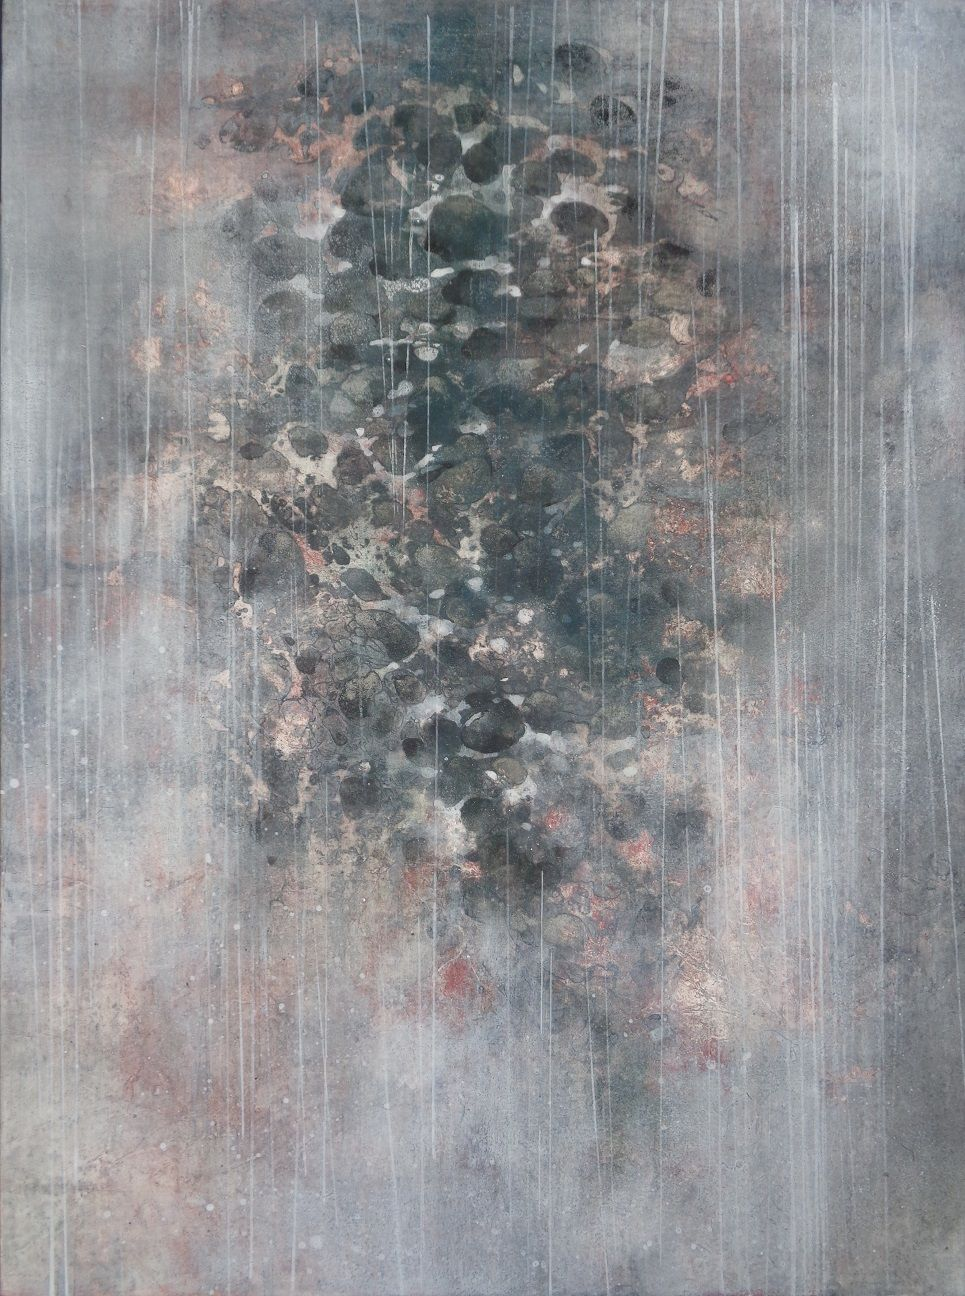 Rainy day I,Chen Yiching,Contemporary painting